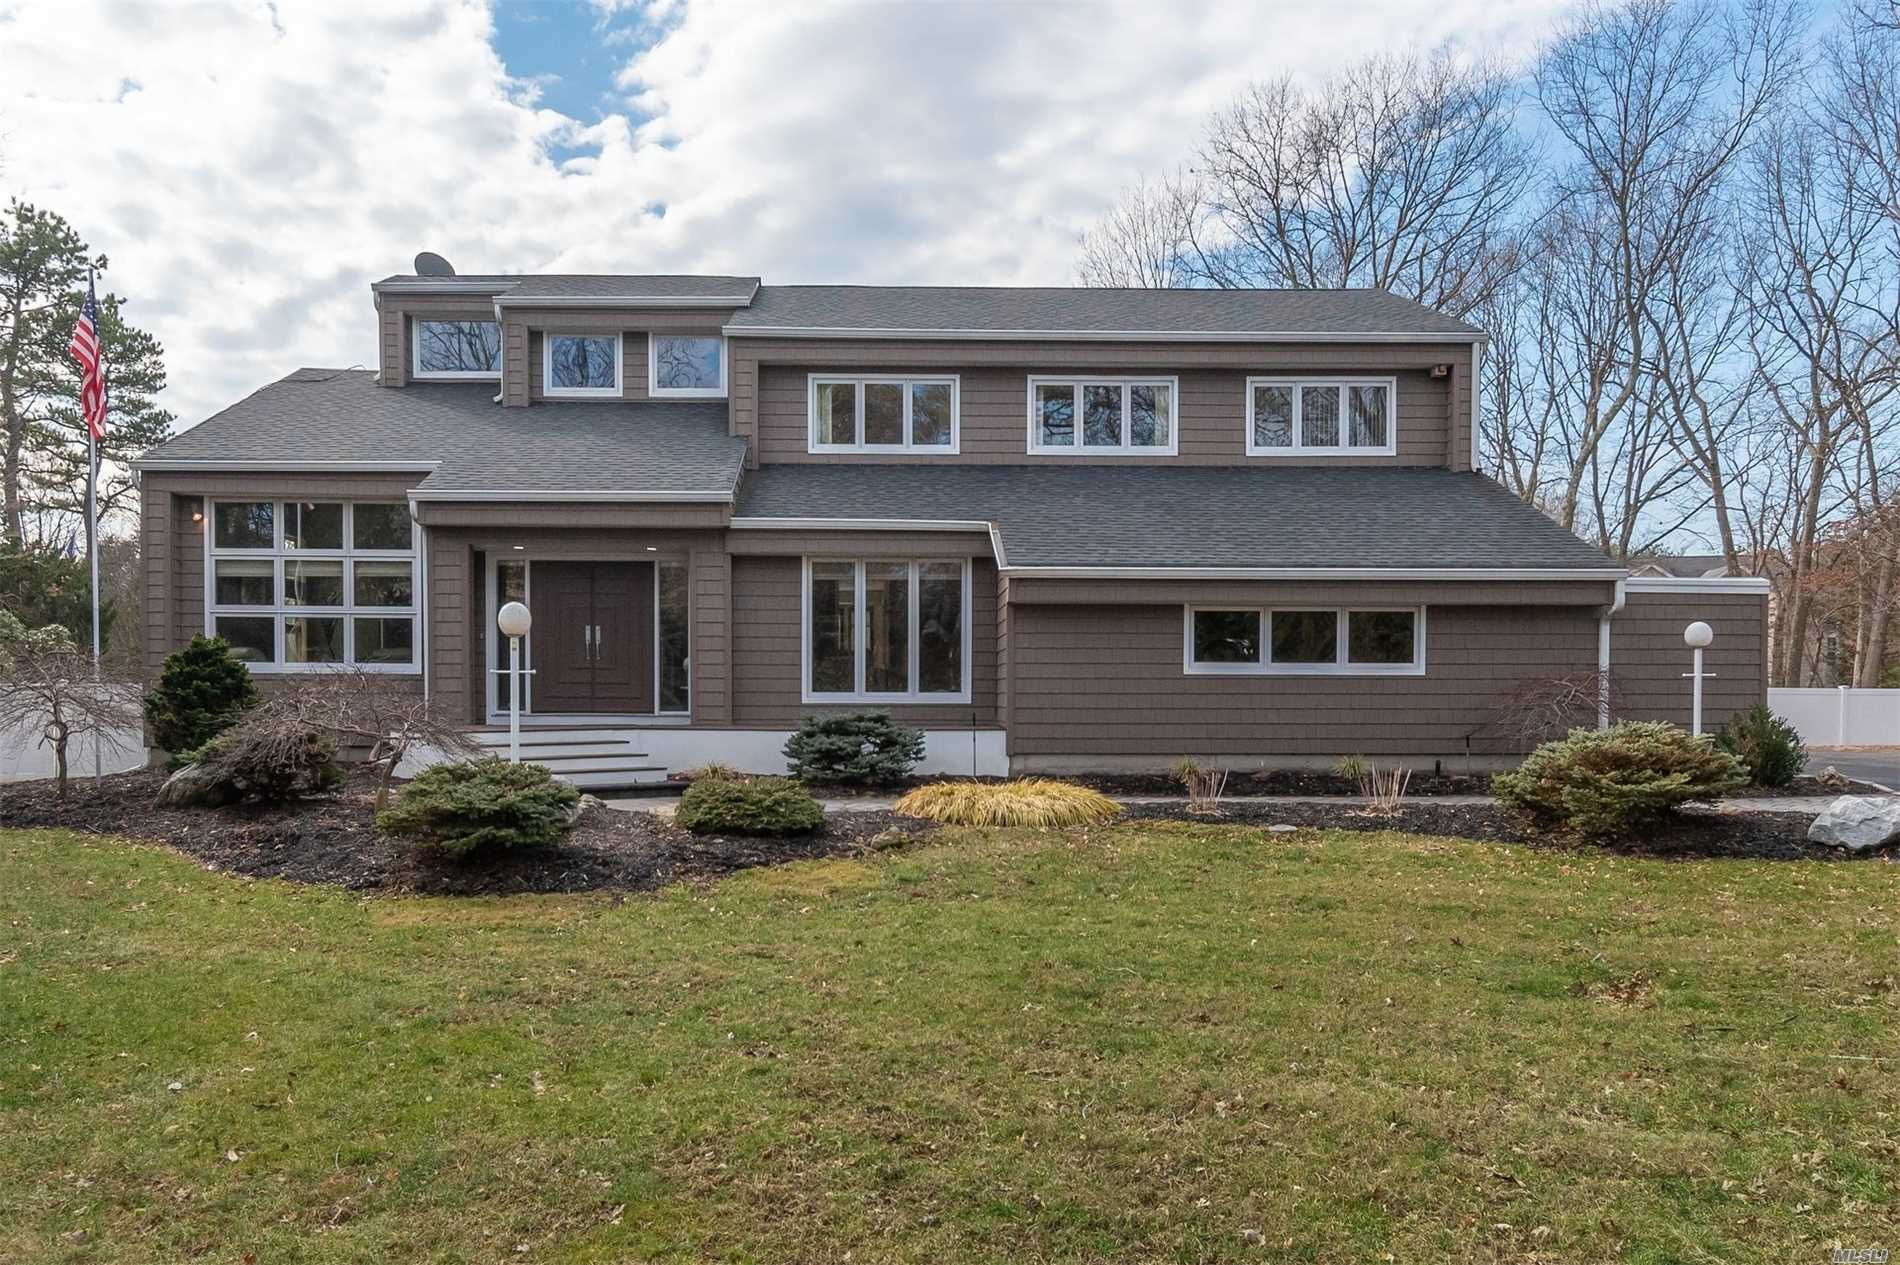 Exquisite Campo Built Home. All Large Rooms, Two Family Rooms, One On Each Level, Wood Floors, Cental Vac, Cac, Dynamic Kitchen Perfect For Entertaining. Backyard Perfect For Summer Get Togethers. All This On A Cul De Sac In Family Neighborhood. Taxes With Star Approx. $15, 120.99